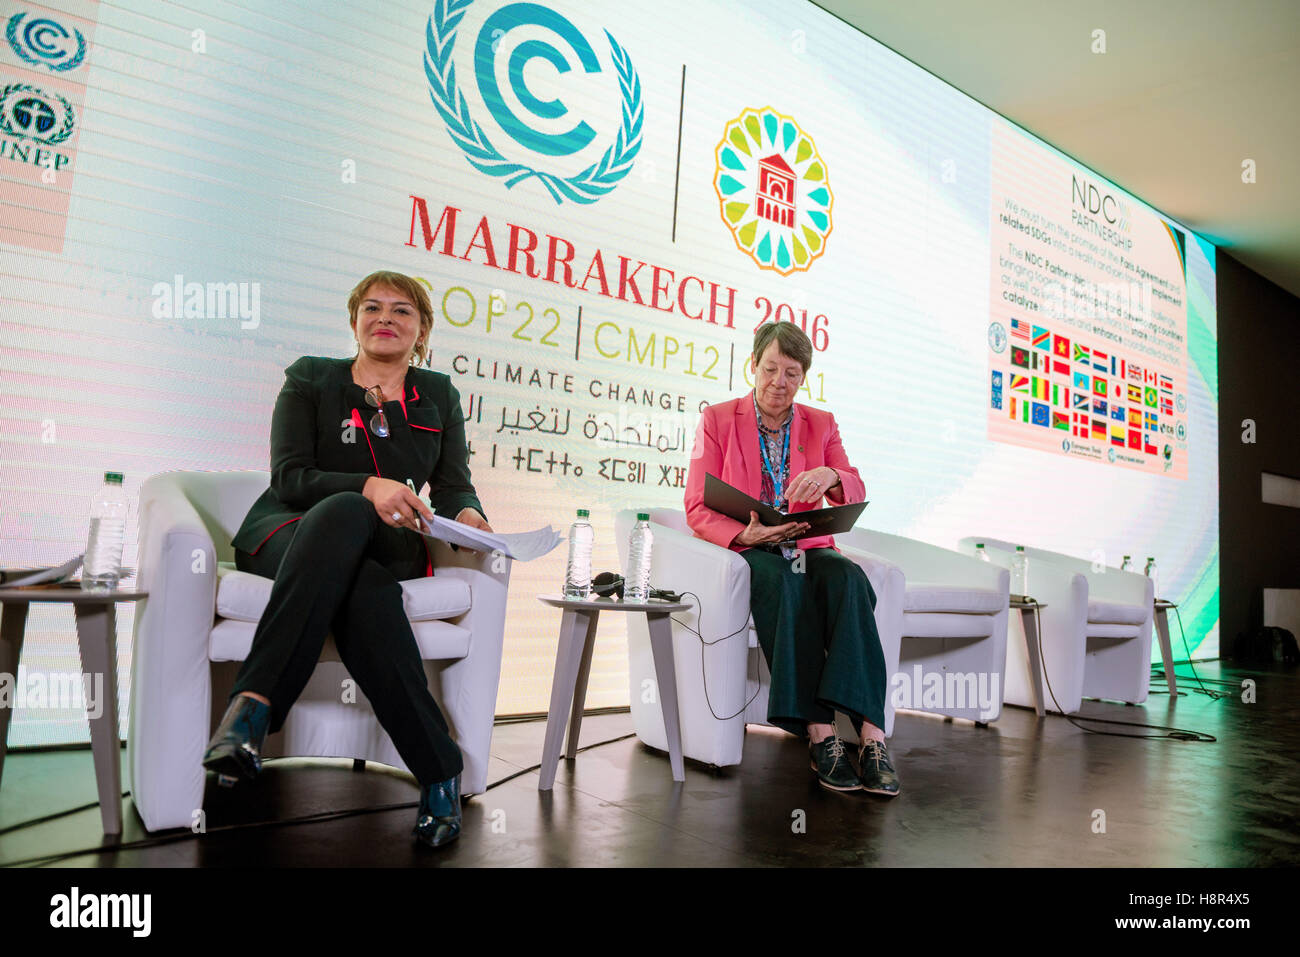 Marrakech, Morocco. 15th Nov, 2016. The German Federal Minister of the Environment Barbara Hendricks (R) and the Stock Photo